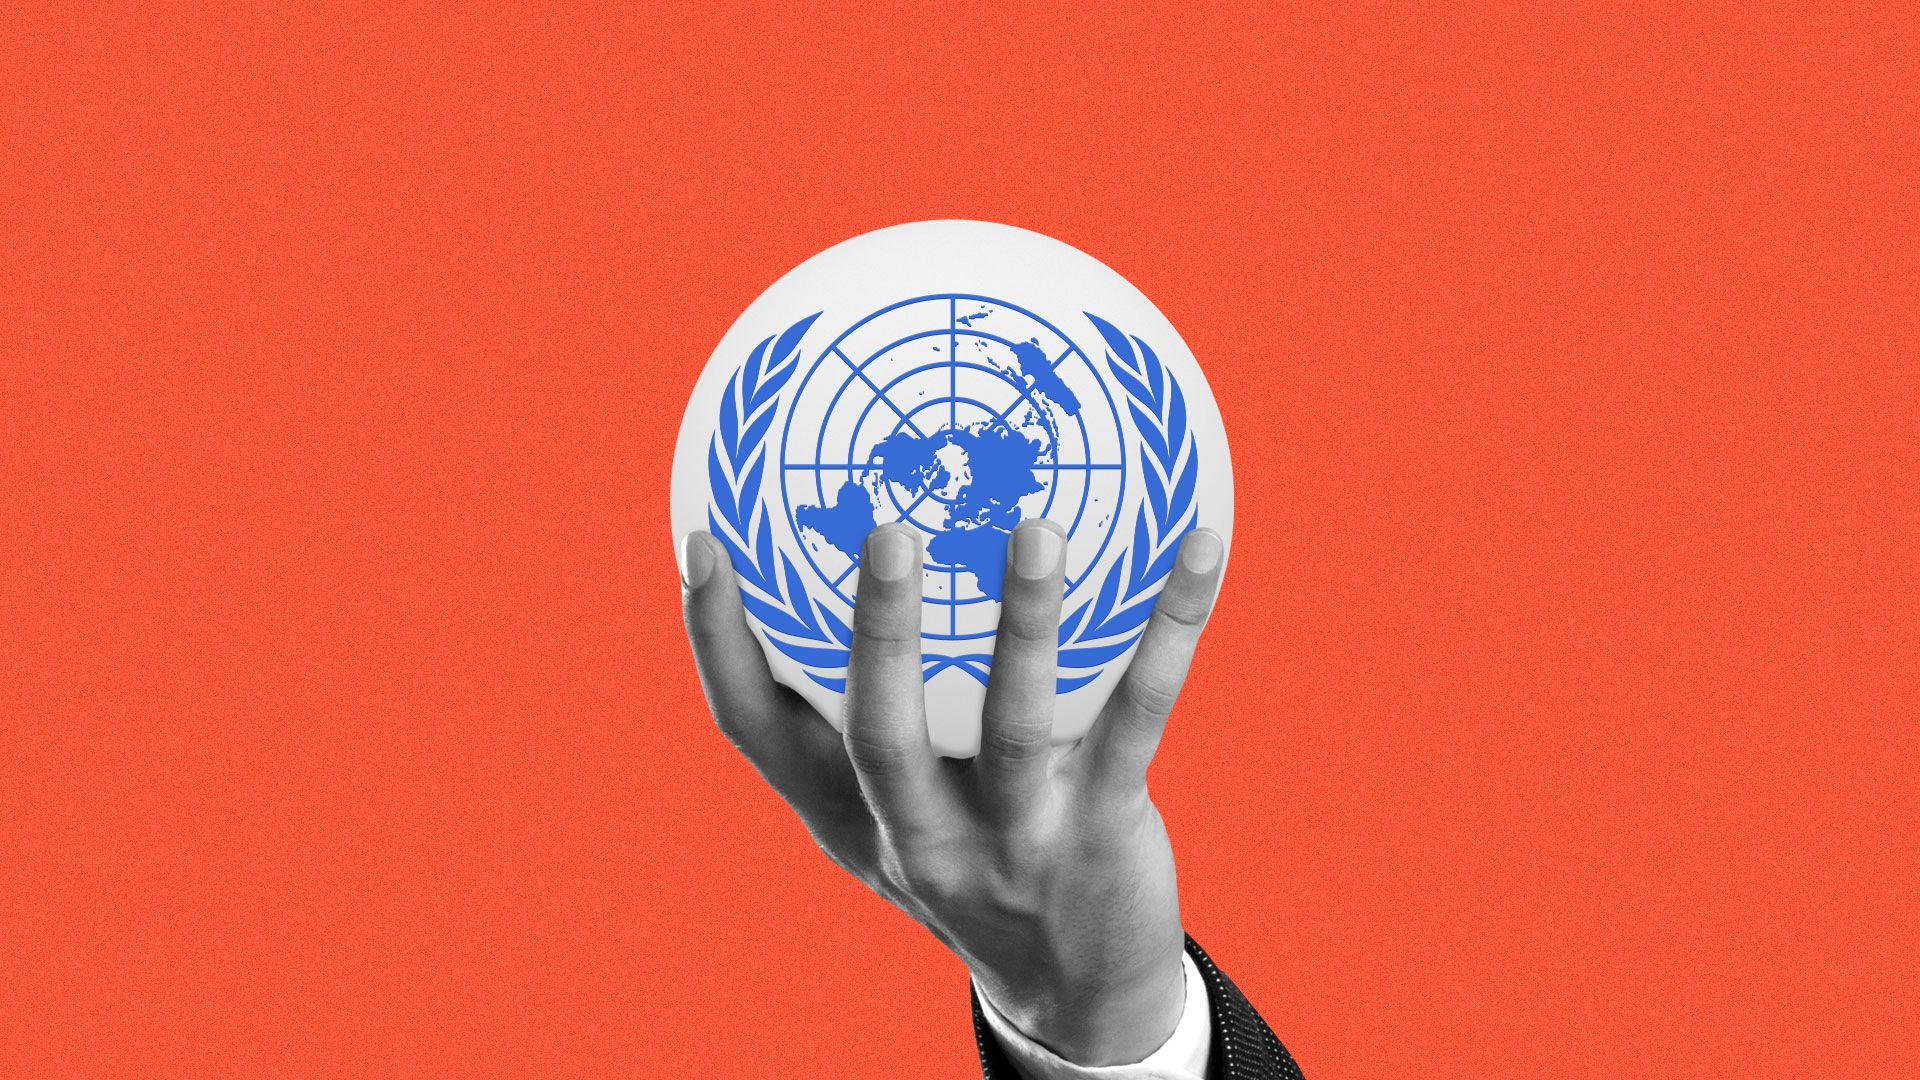 Illustration of a hand holding up a sphere with the United Nations logo